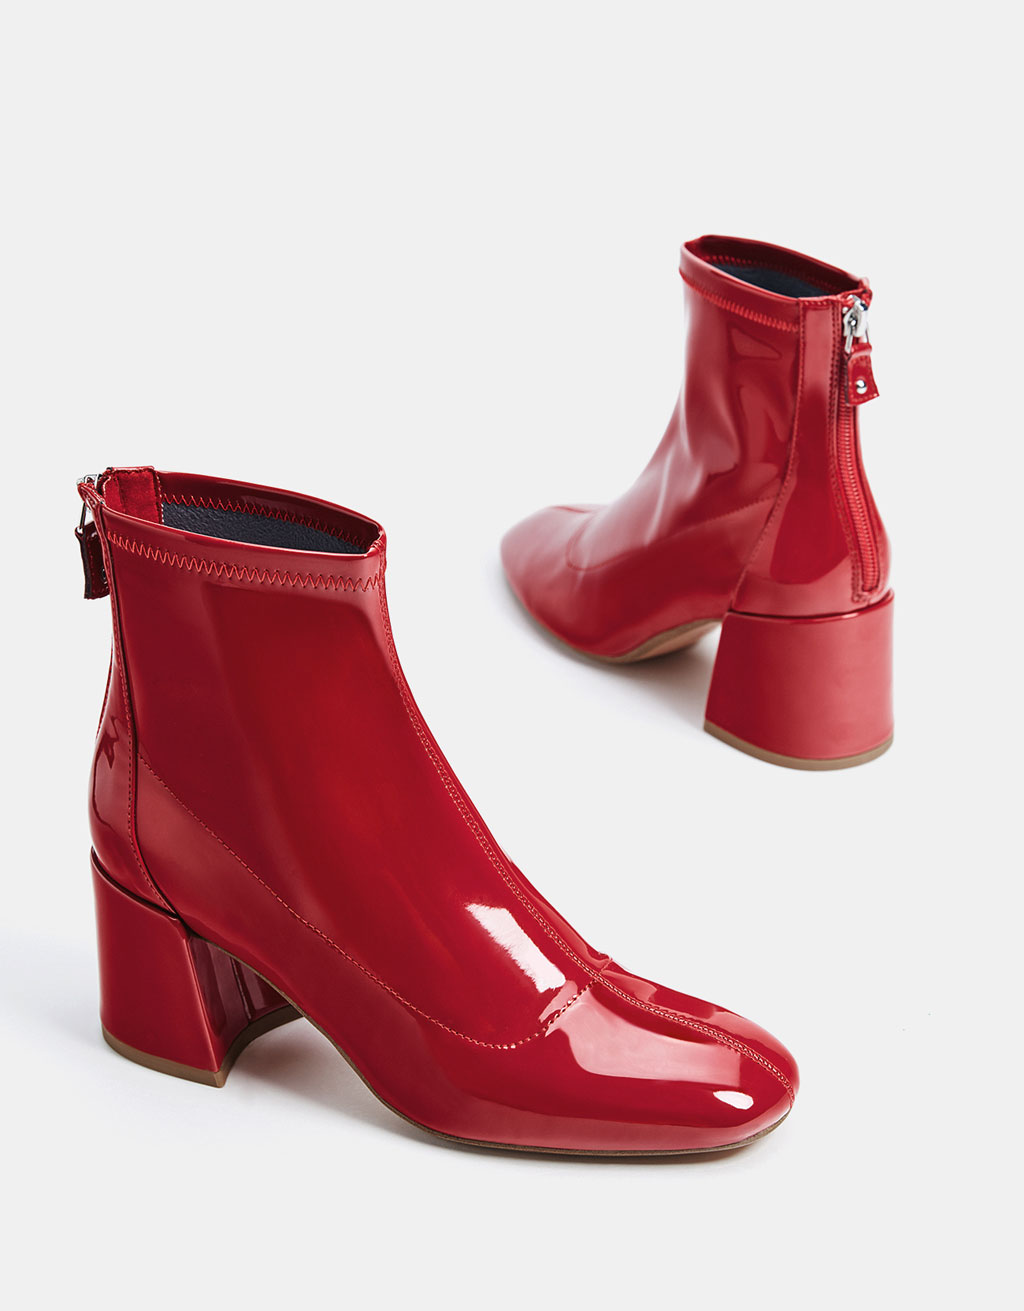 Faux patent leather mid-heel ankle boots